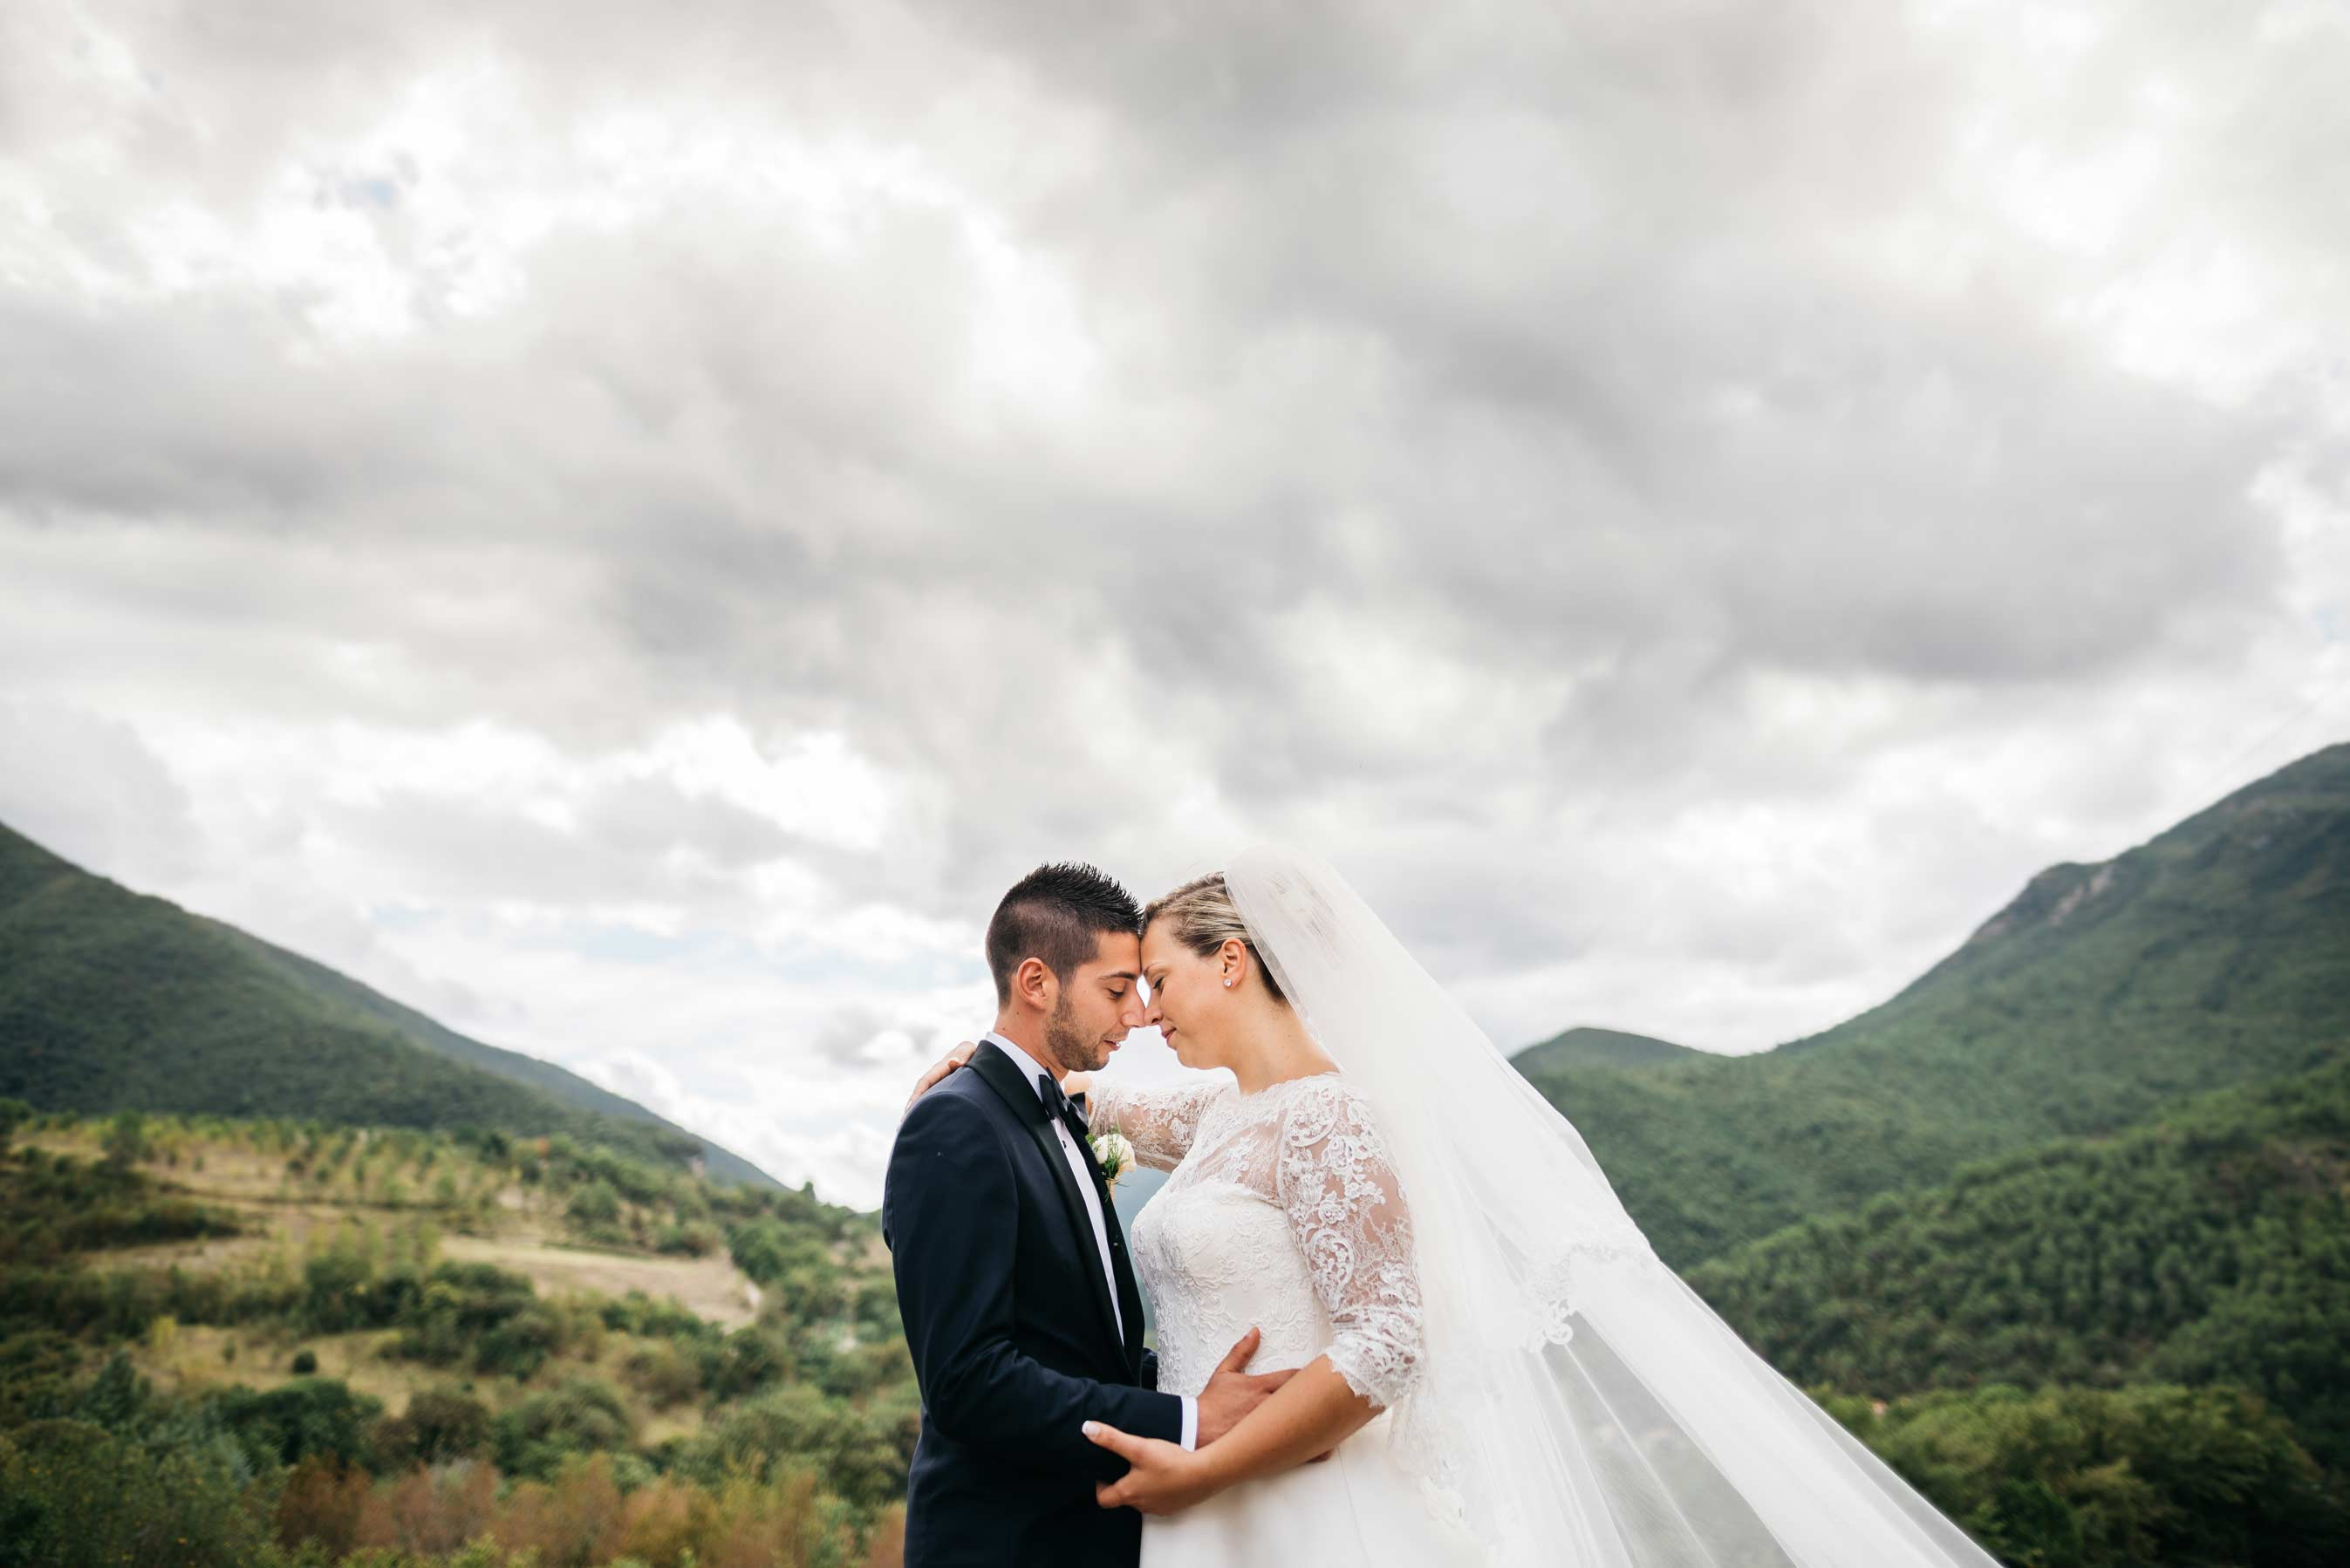 Wedding-Photographer-in-Italy-Destination-Wedding-Italy-Portraits